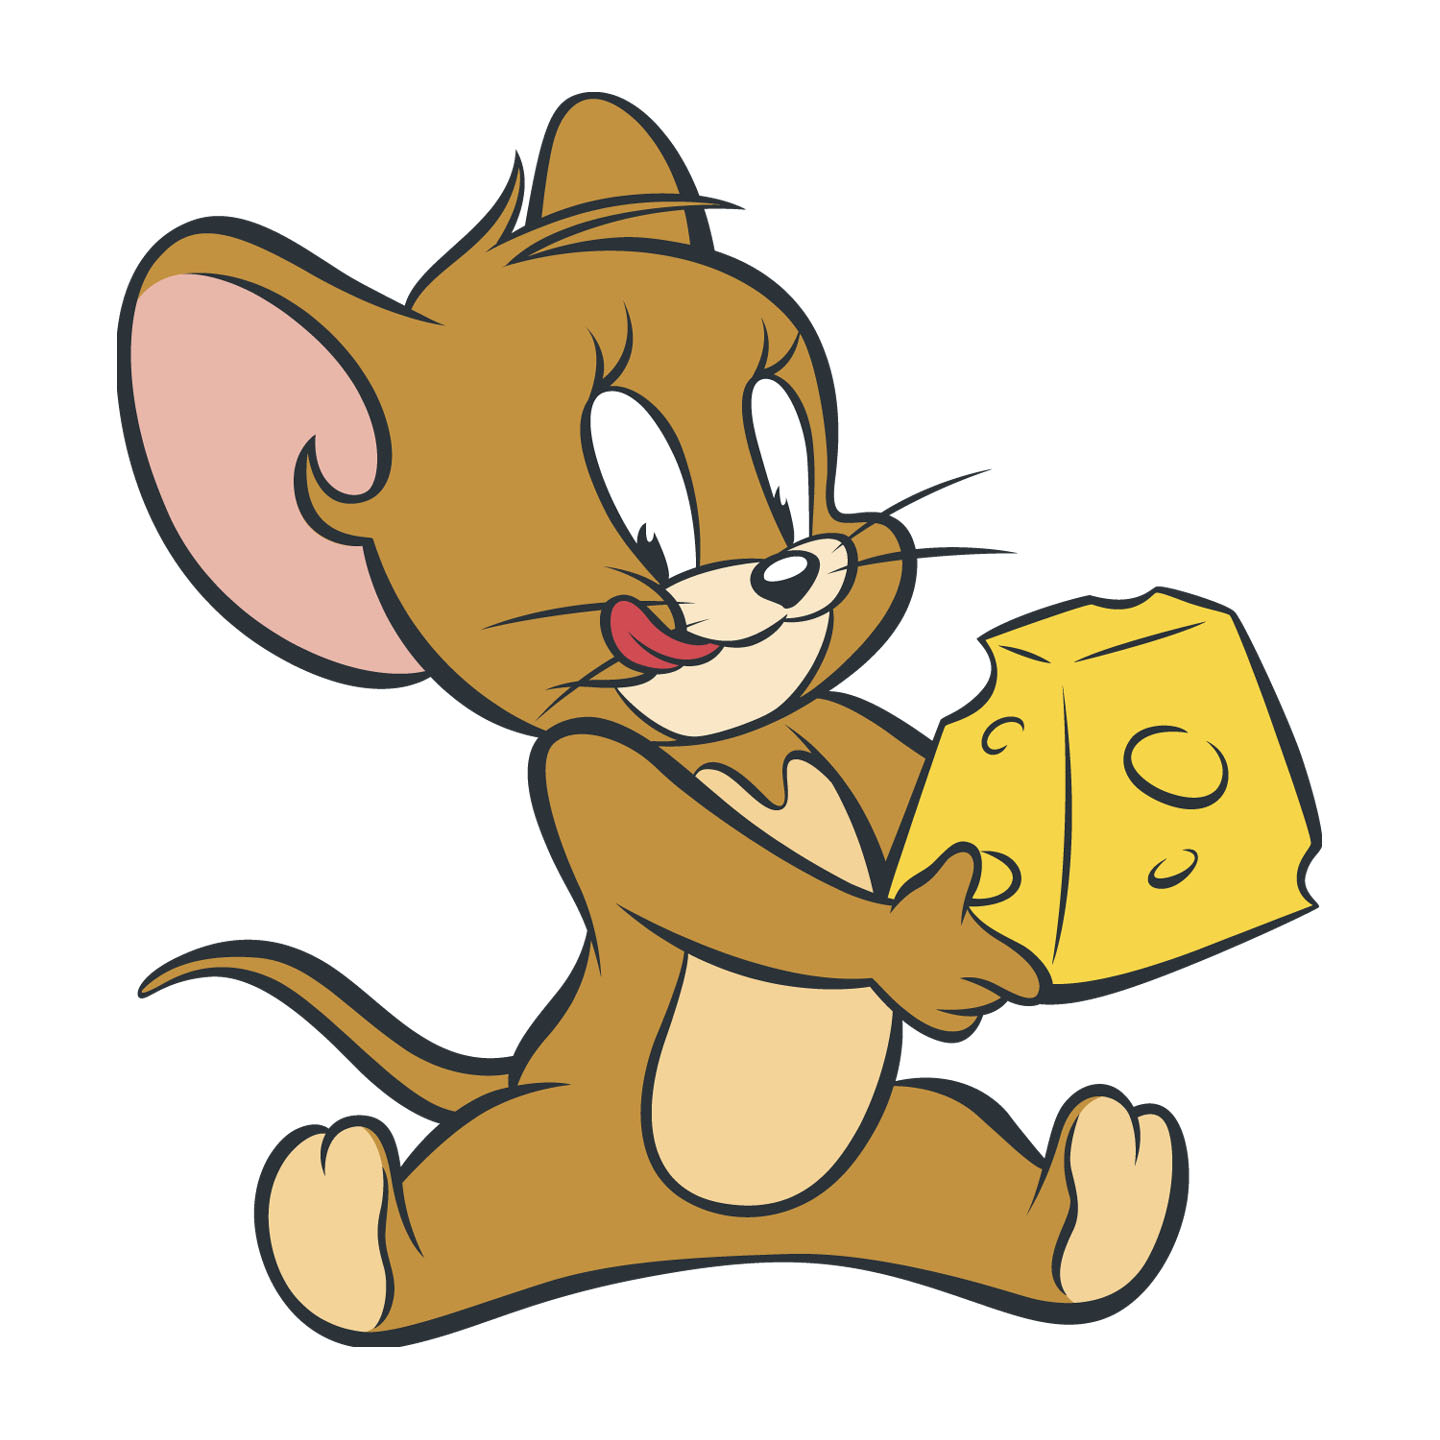 Drawn cheese tom and jerry #1